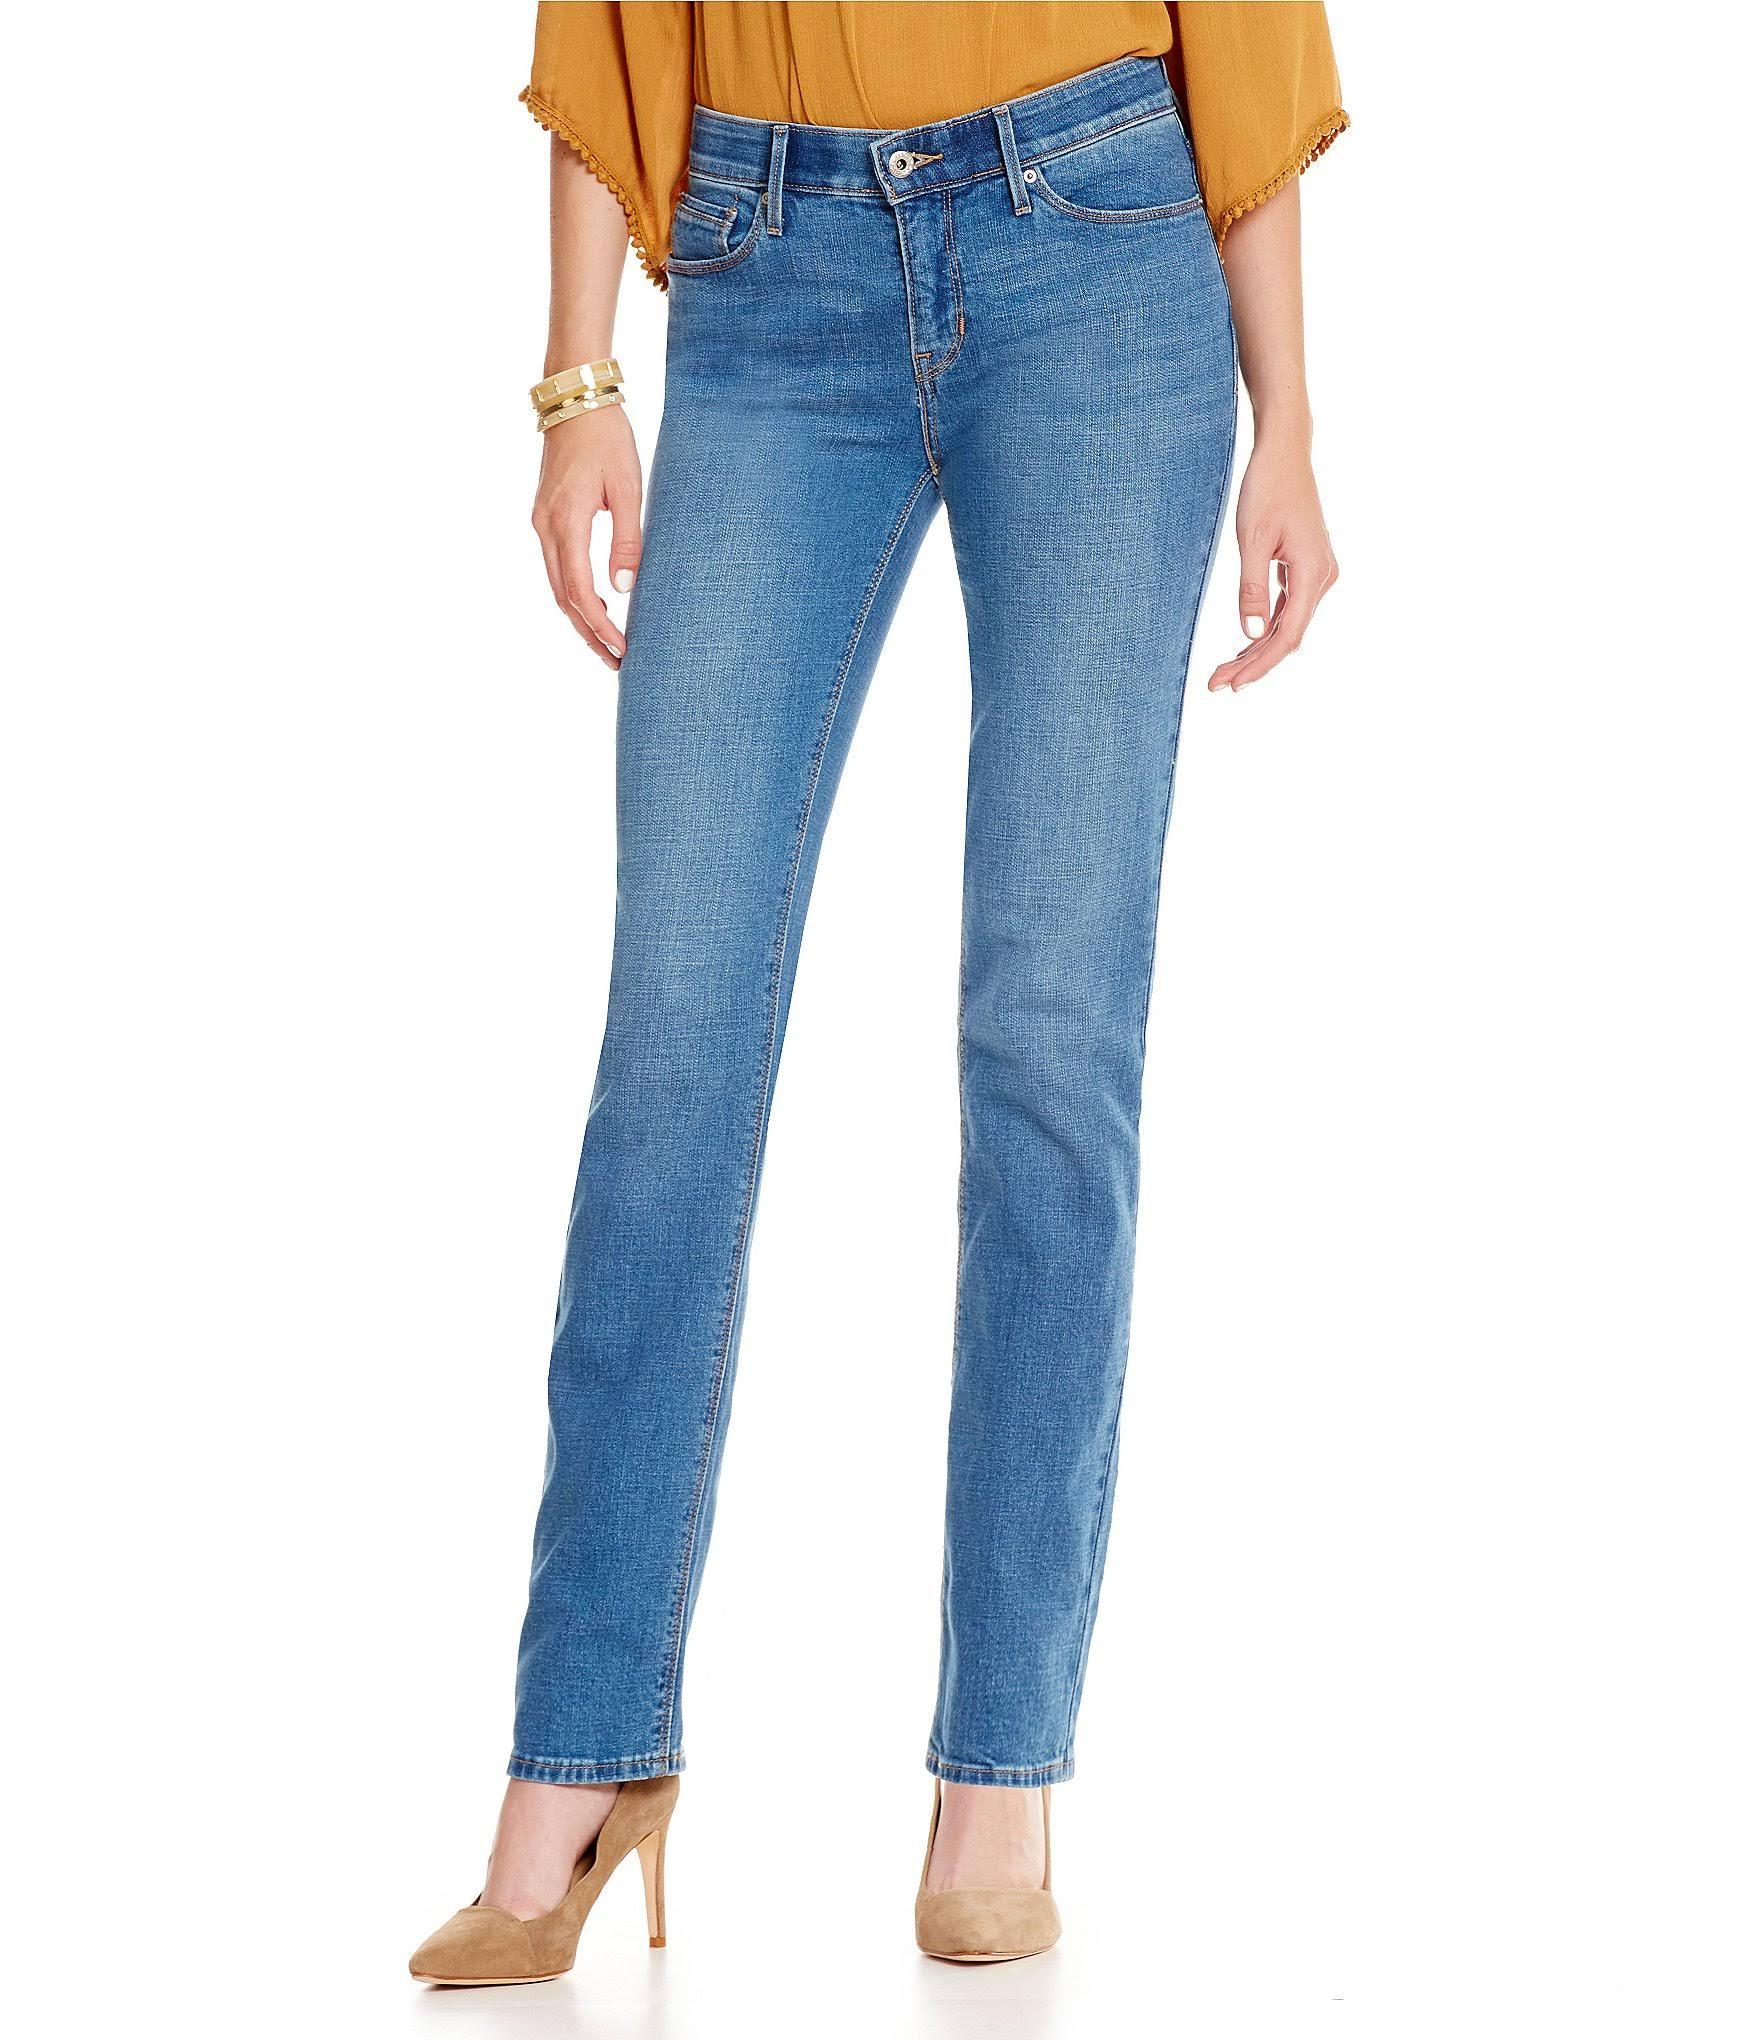 Levis 525 Perfect Waist straight waistband jeans - back view